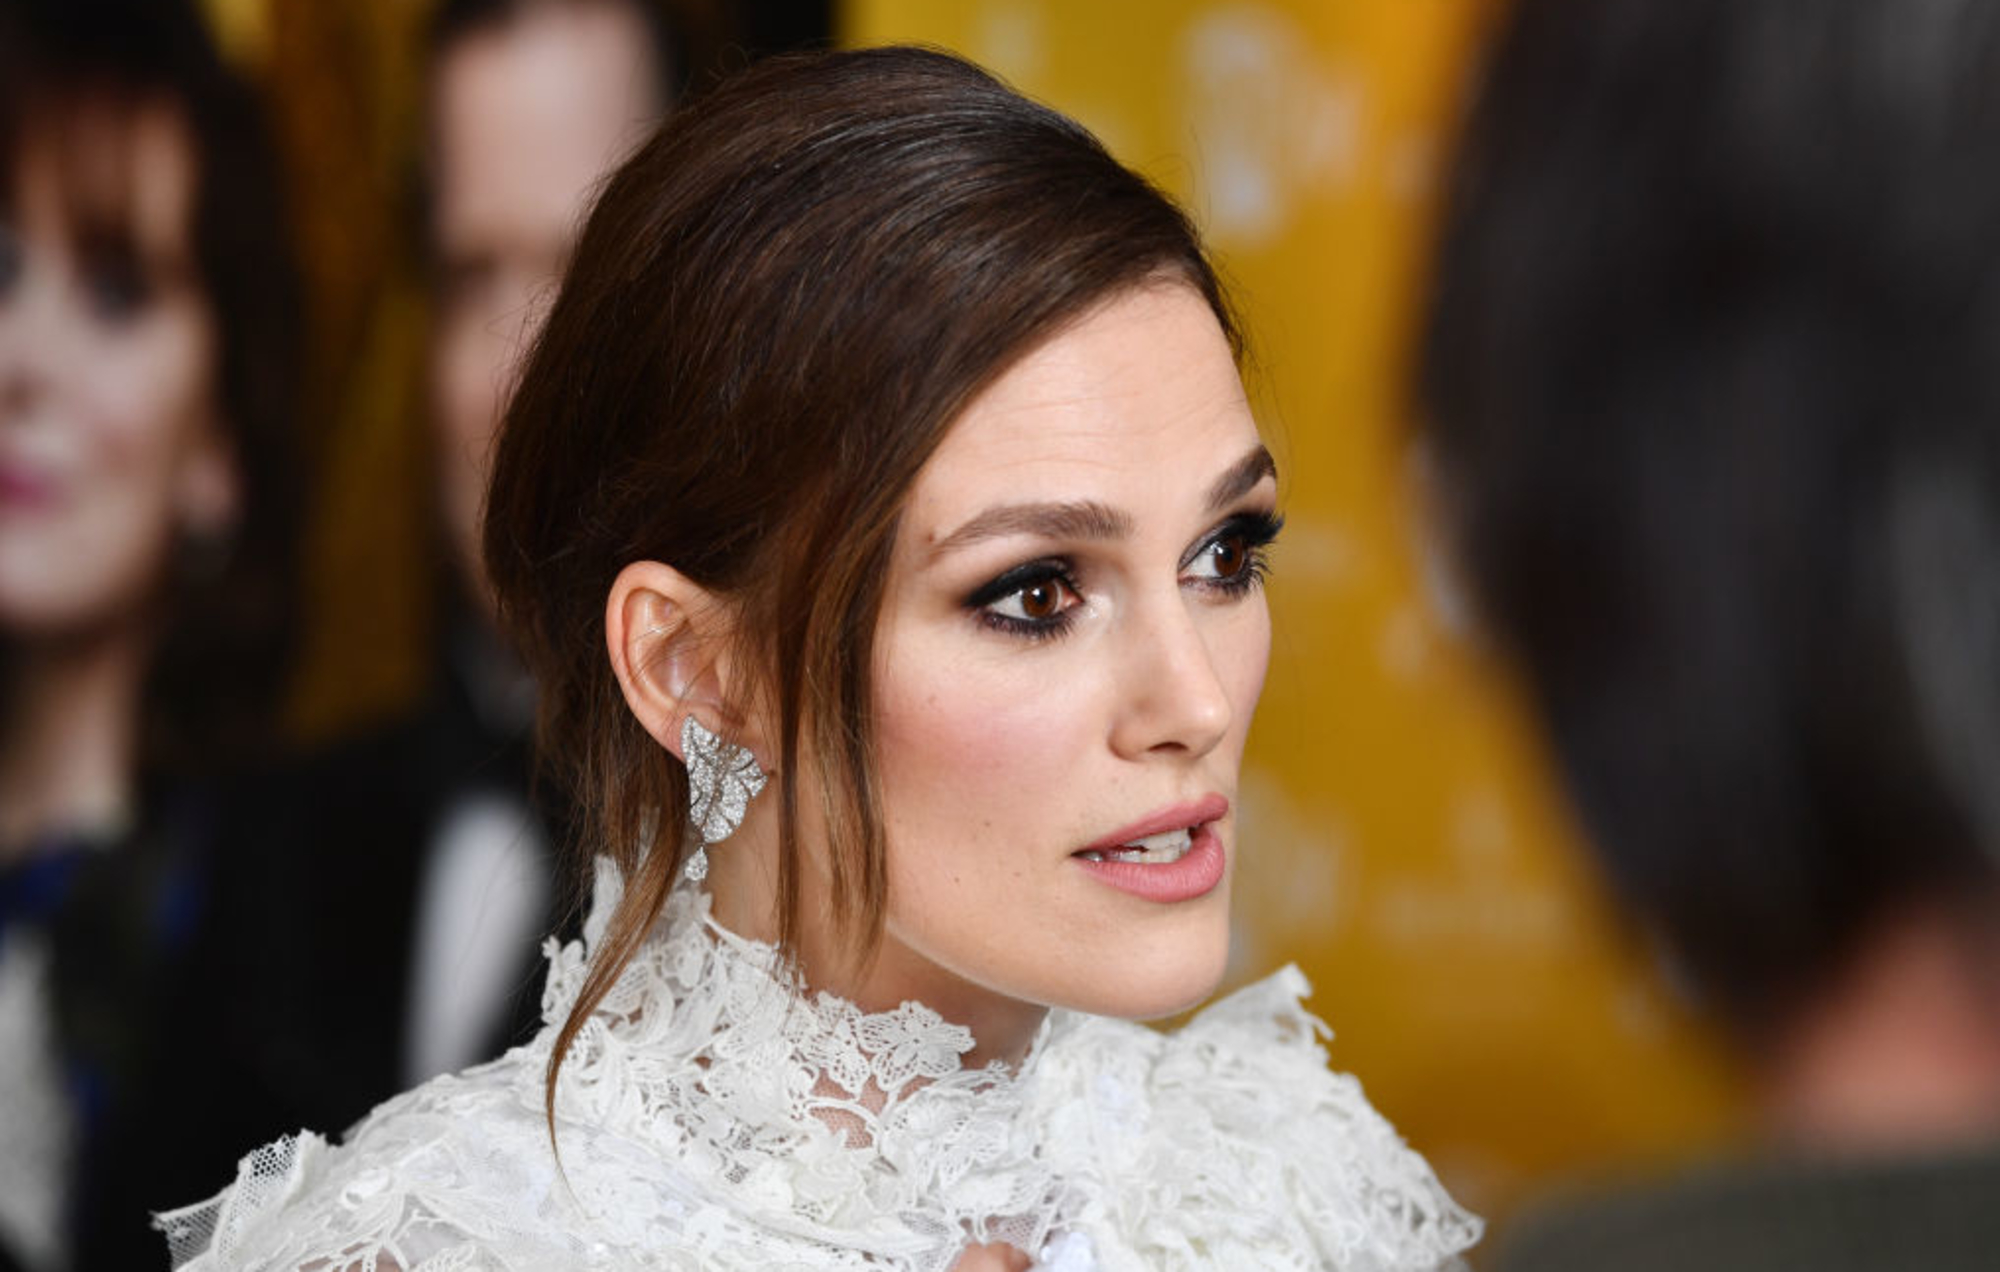 Keira Knightley struggles to remember who she played in 'Star Wars'